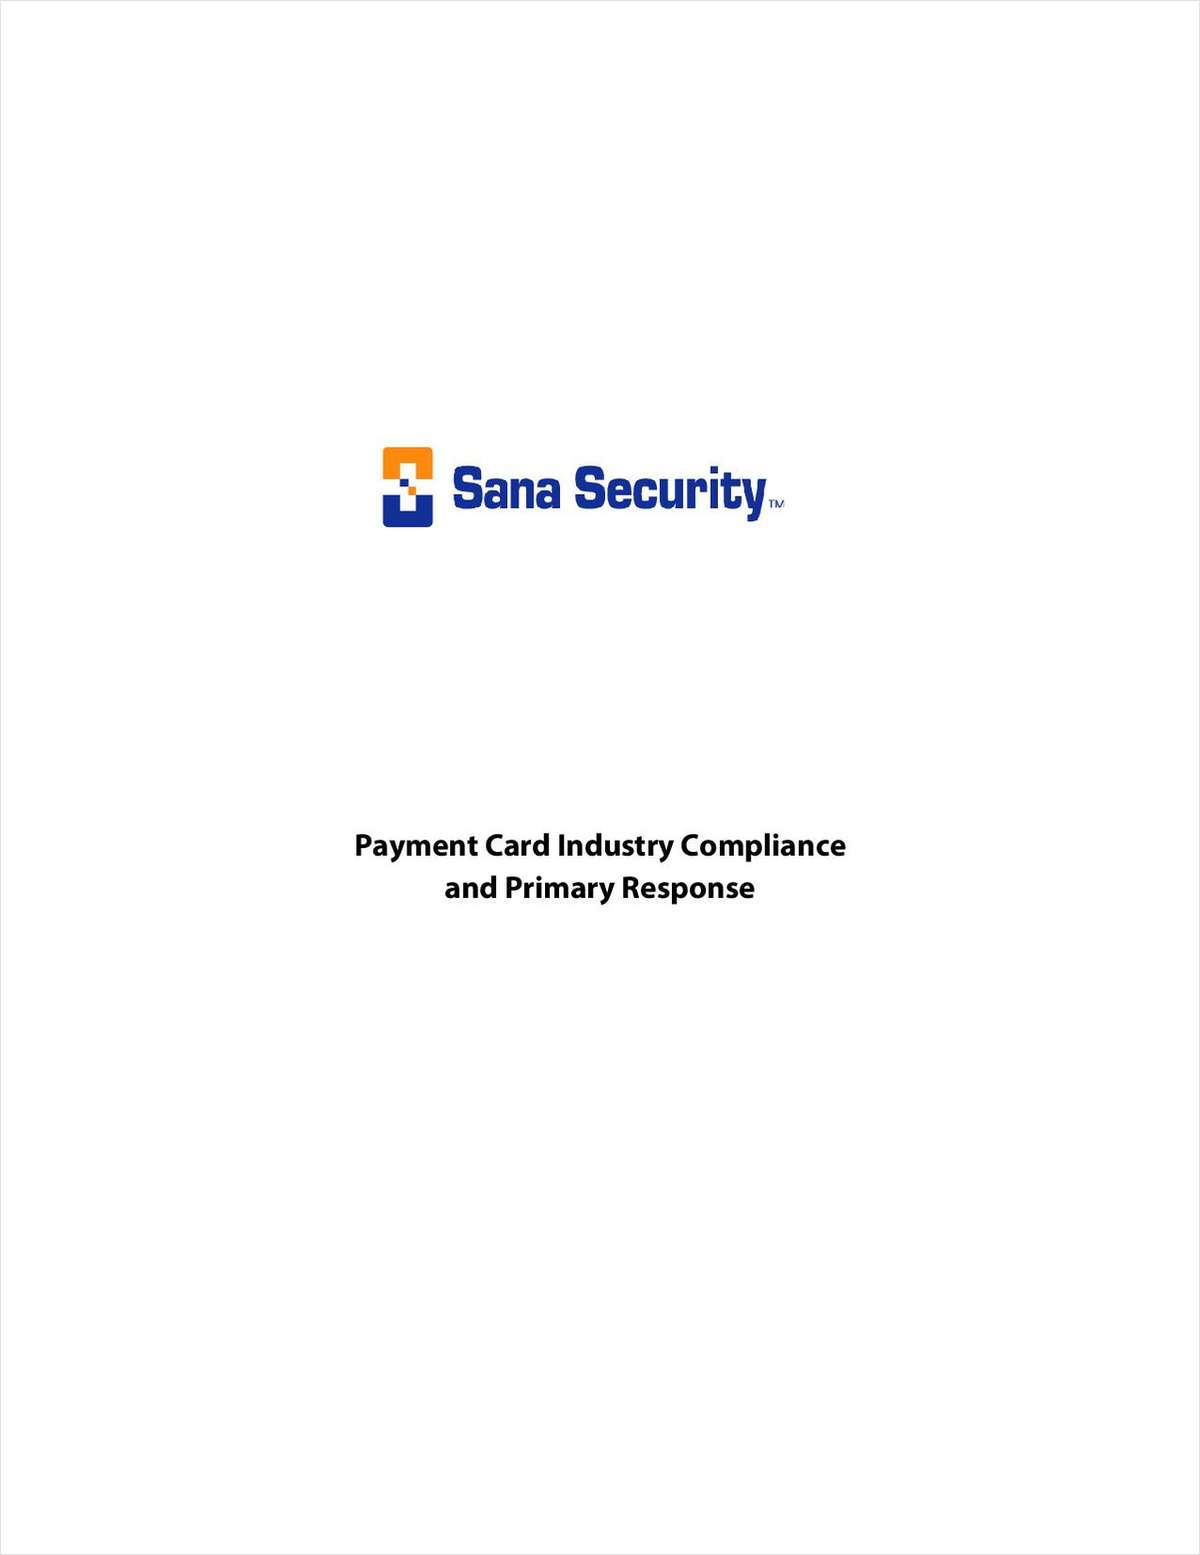 Payment Card Industry Compliance and Primary Response